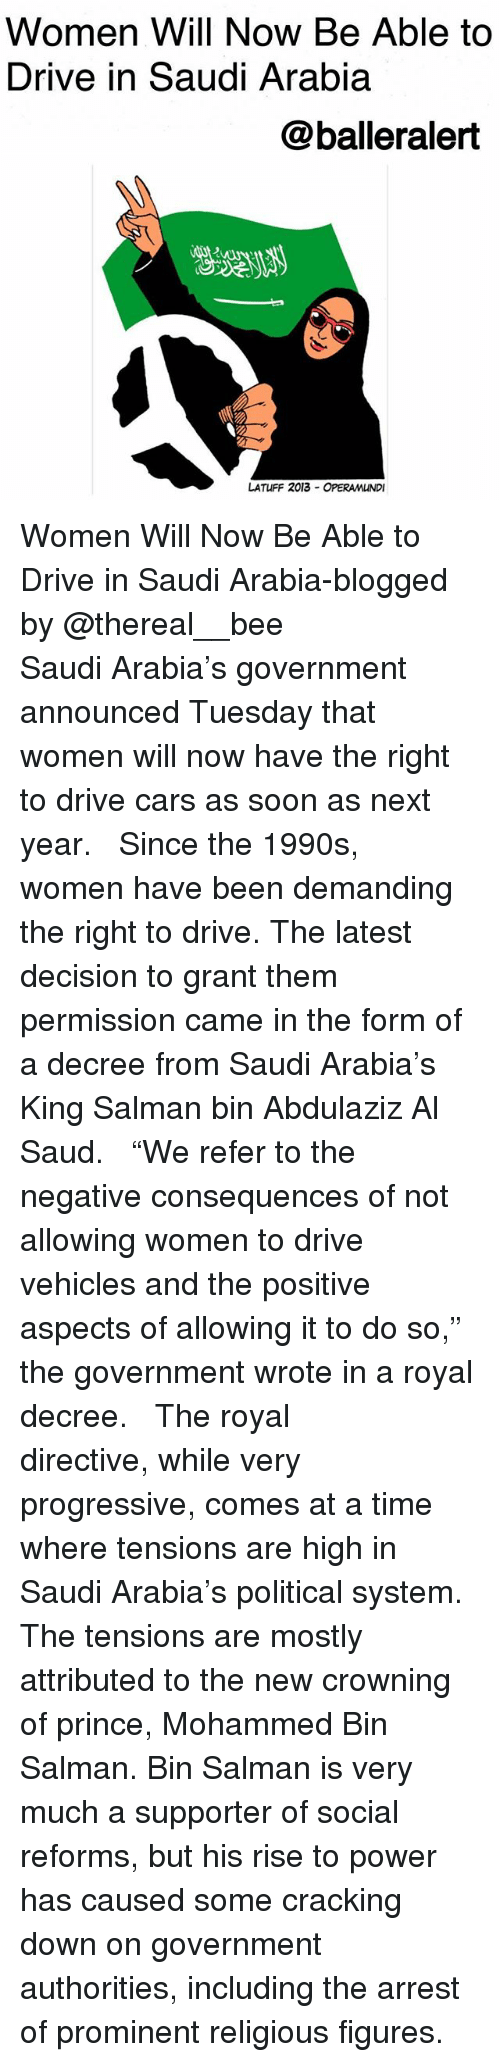 """Cars, Memes, and Prince: Women Will Now Be Able to  Drive in Saudi Arabia  @balleralert  じ2  LATUFF 2013 OPERAMUNDI Women Will Now Be Able to Drive in Saudi Arabia-blogged by @thereal__bee ⠀⠀⠀⠀⠀⠀⠀⠀⠀ ⠀⠀ Saudi Arabia's government announced Tuesday that women will now have the right to drive cars as soon as next year. ⠀⠀⠀⠀⠀⠀⠀⠀⠀ ⠀⠀ Since the 1990s, women have been demanding the right to drive. The latest decision to grant them permission came in the form of a decree from Saudi Arabia's King Salman bin Abdulaziz Al Saud. ⠀⠀⠀⠀⠀⠀⠀⠀⠀ ⠀⠀ """"We refer to the negative consequences of not allowing women to drive vehicles and the positive aspects of allowing it to do so,"""" the government wrote in a royal decree. ⠀⠀⠀⠀⠀⠀⠀⠀⠀ ⠀⠀ The royal directive, while very progressive, comes at a time where tensions are high in Saudi Arabia's political system. The tensions are mostly attributed to the new crowning of prince, Mohammed Bin Salman. Bin Salman is very much a supporter of social reforms, but his rise to power has caused some cracking down on government authorities, including the arrest of prominent religious figures."""